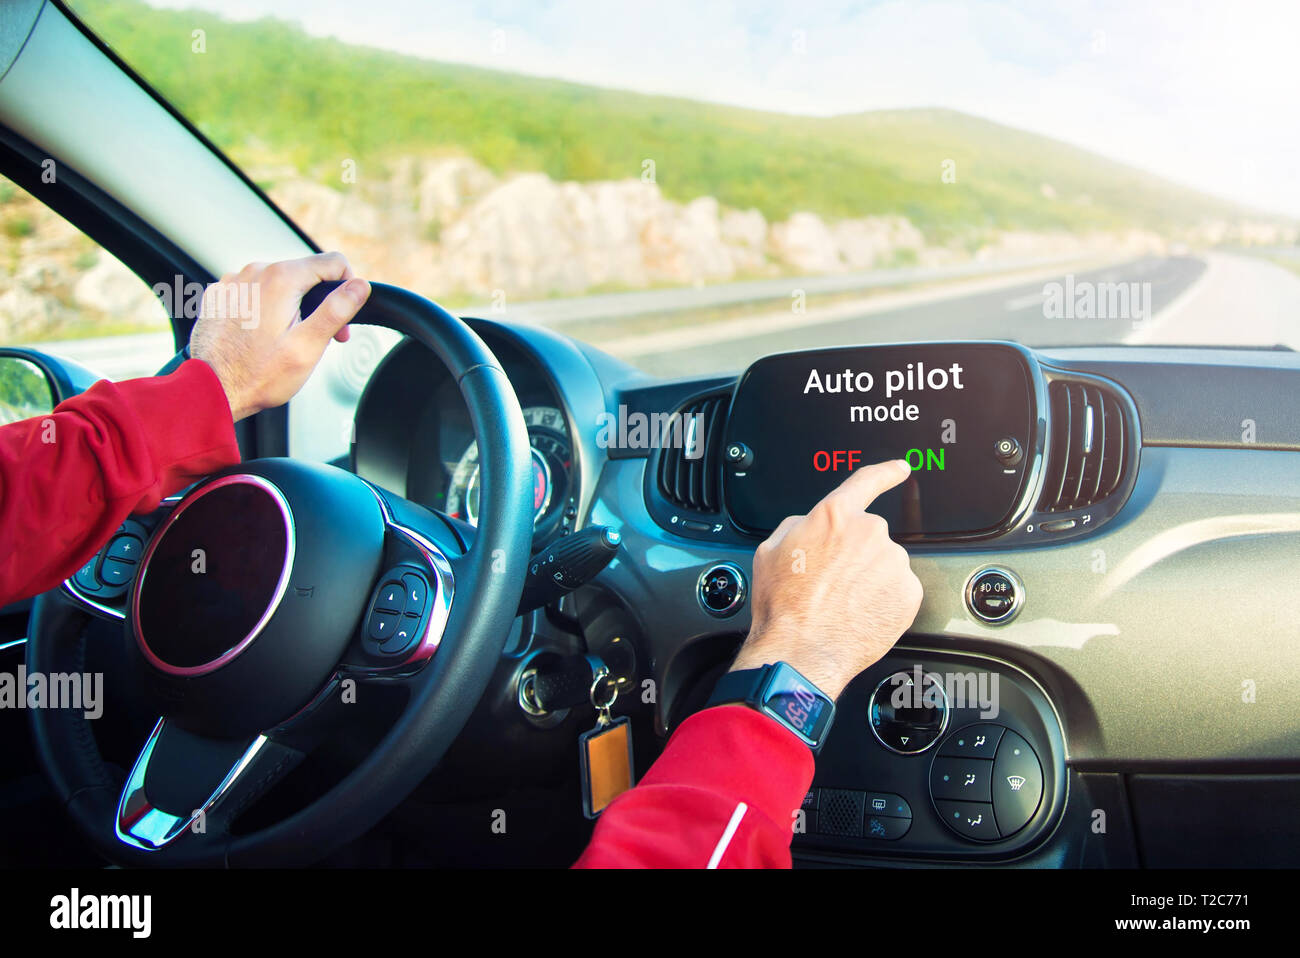 male hands with smart watch on switching on auto pilot mode on car display on highway - Stock Image